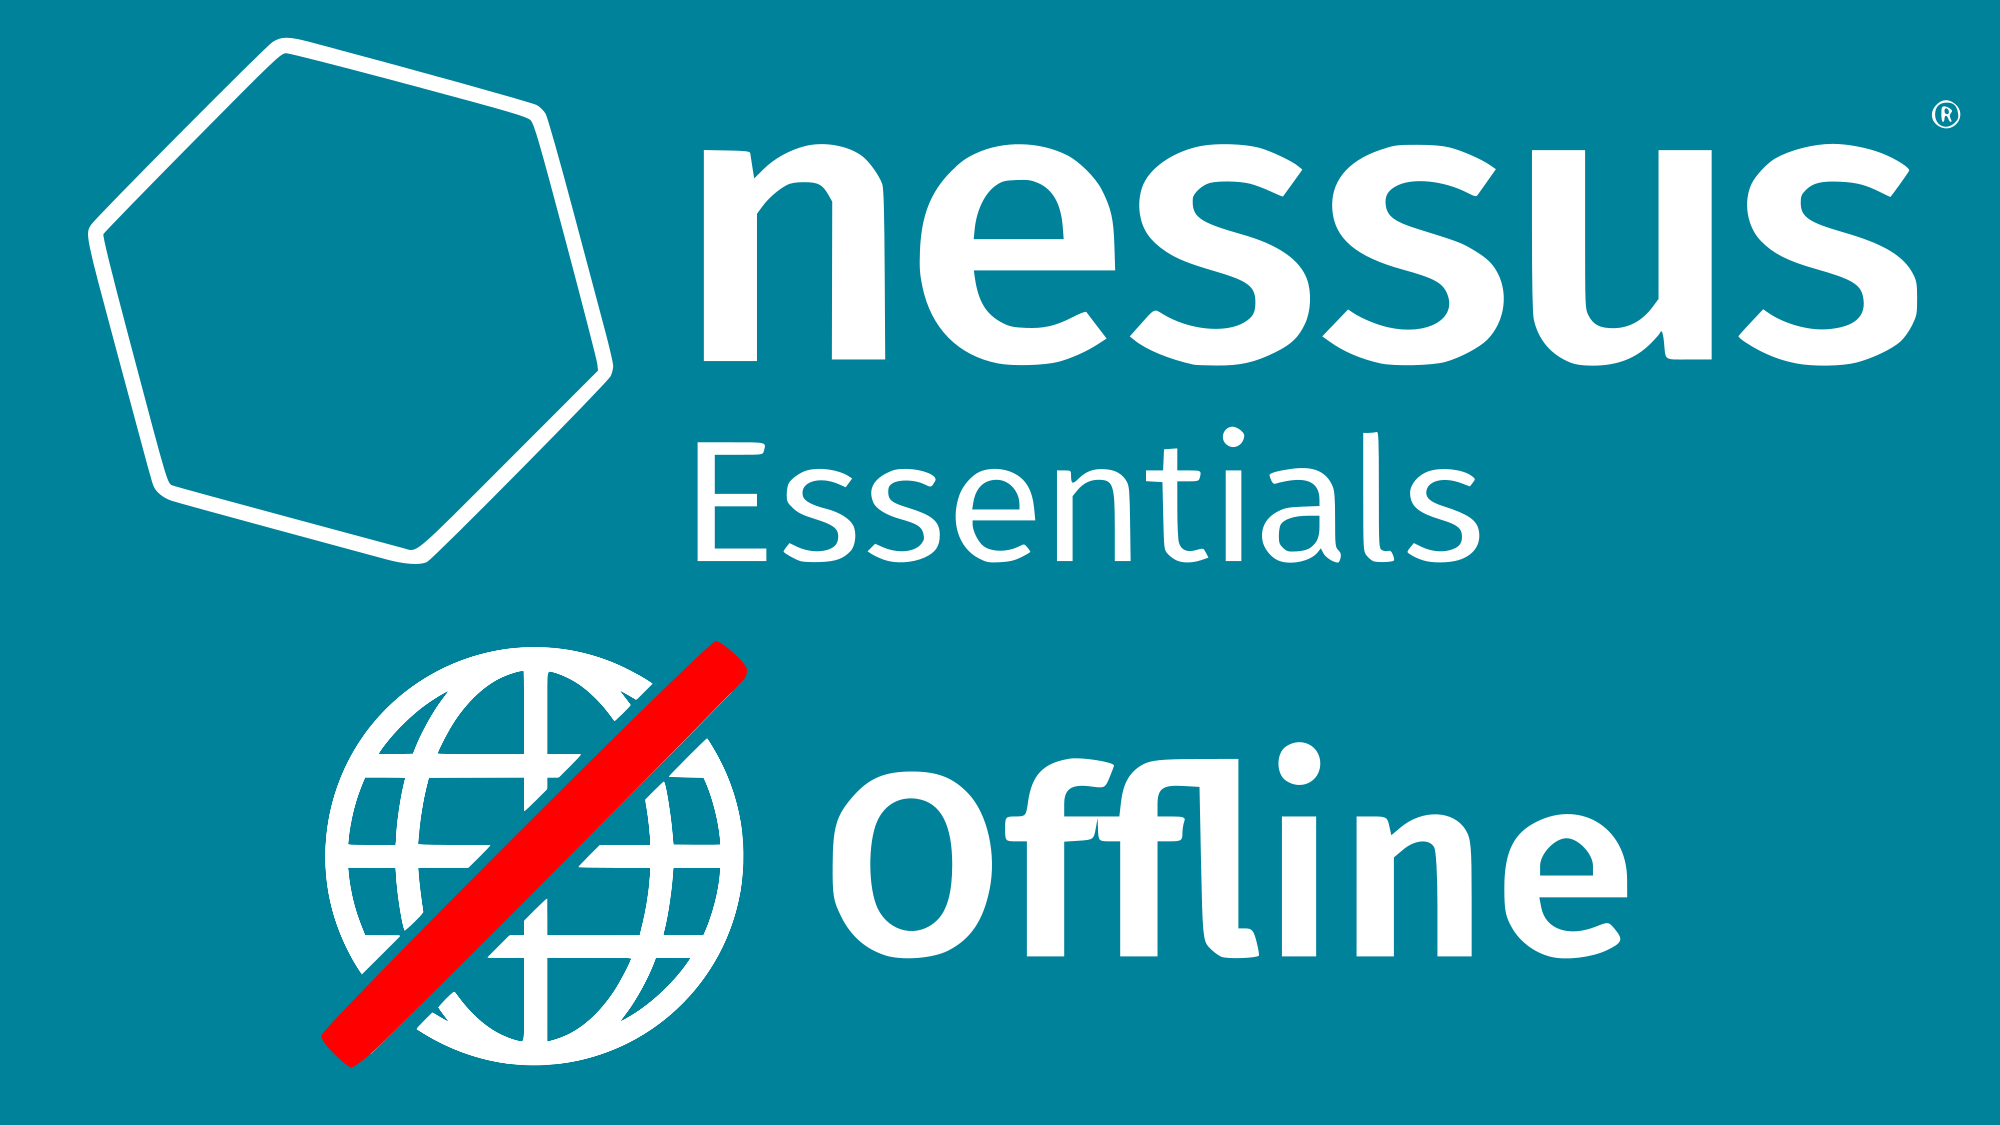 Nessus Essentials with offline updates